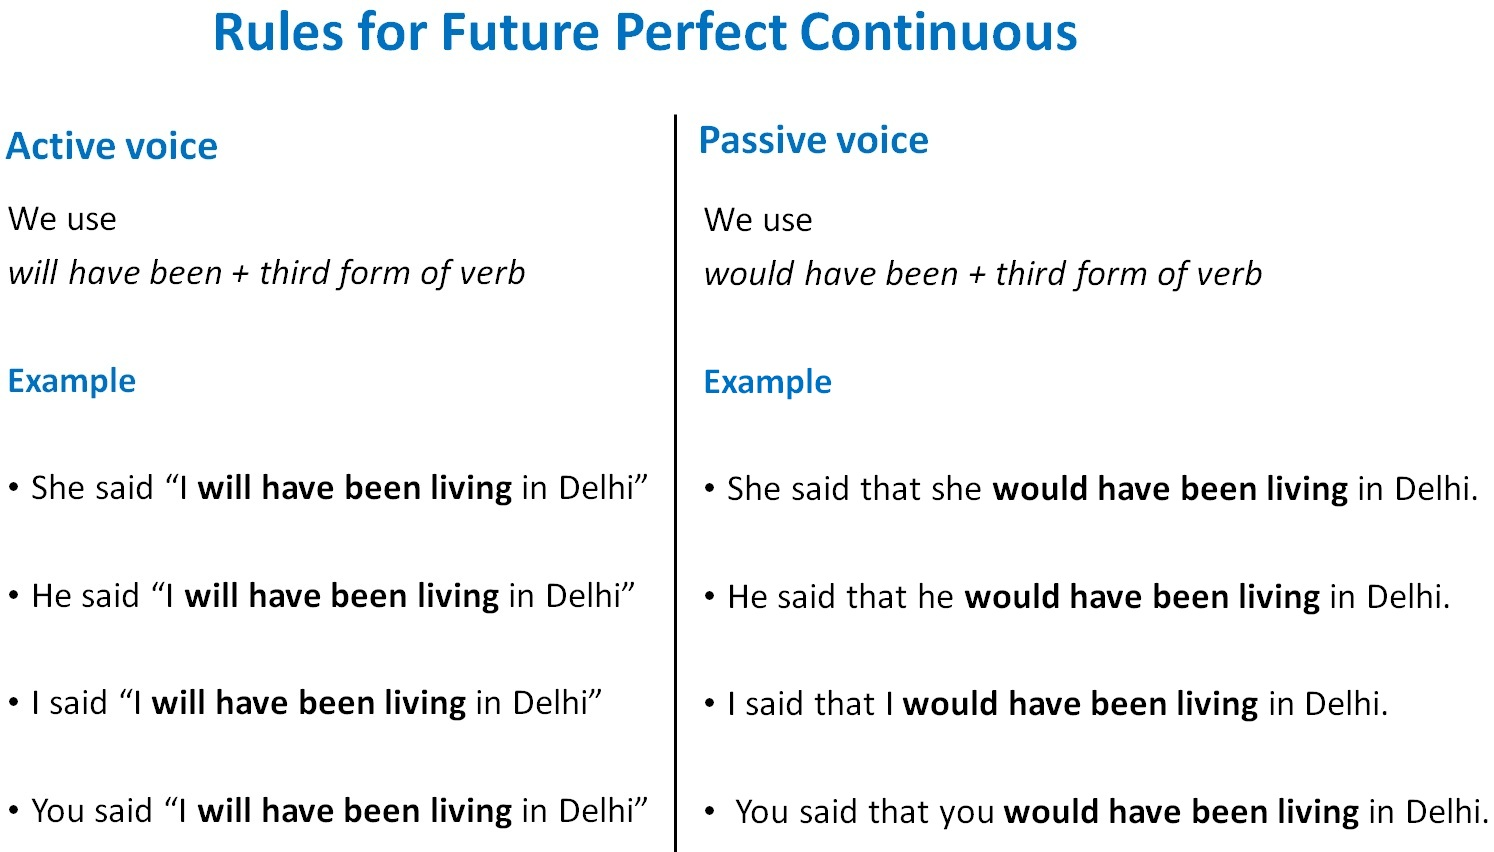 Rules for Future Perfect Continuous.jpg